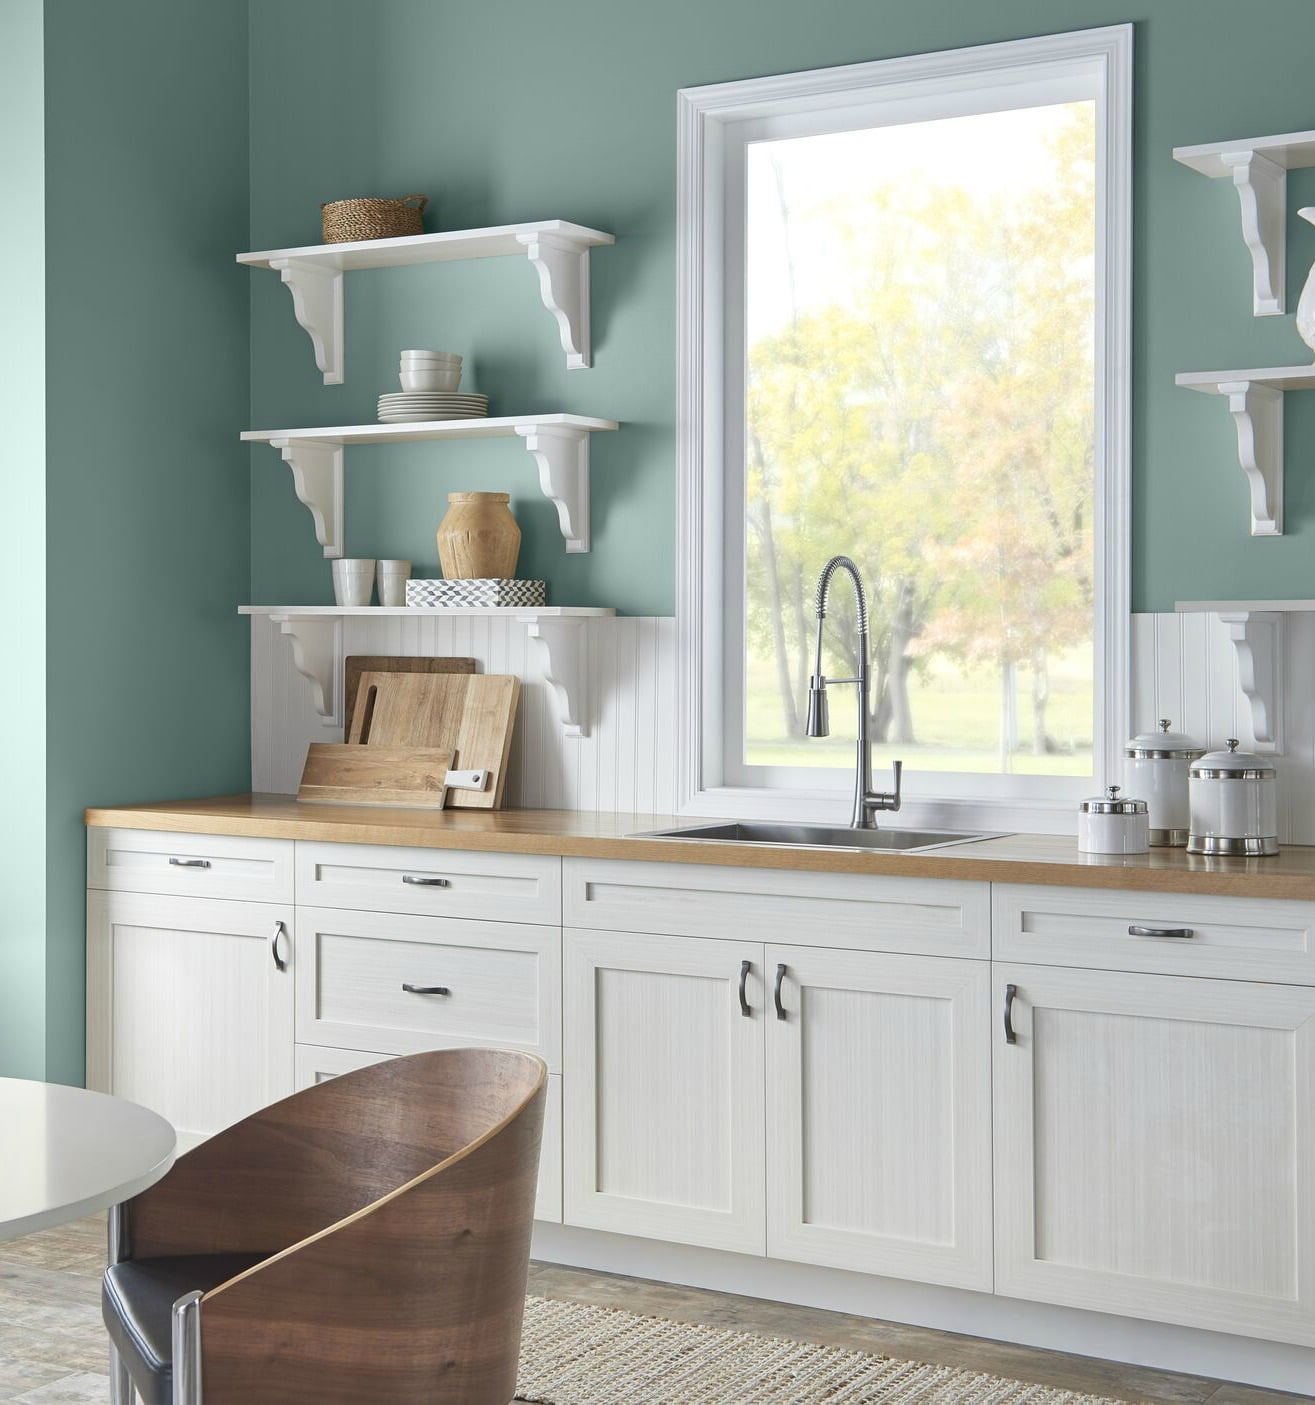 Behr In The Moment In A Kitchen With White Country Style Cabinets